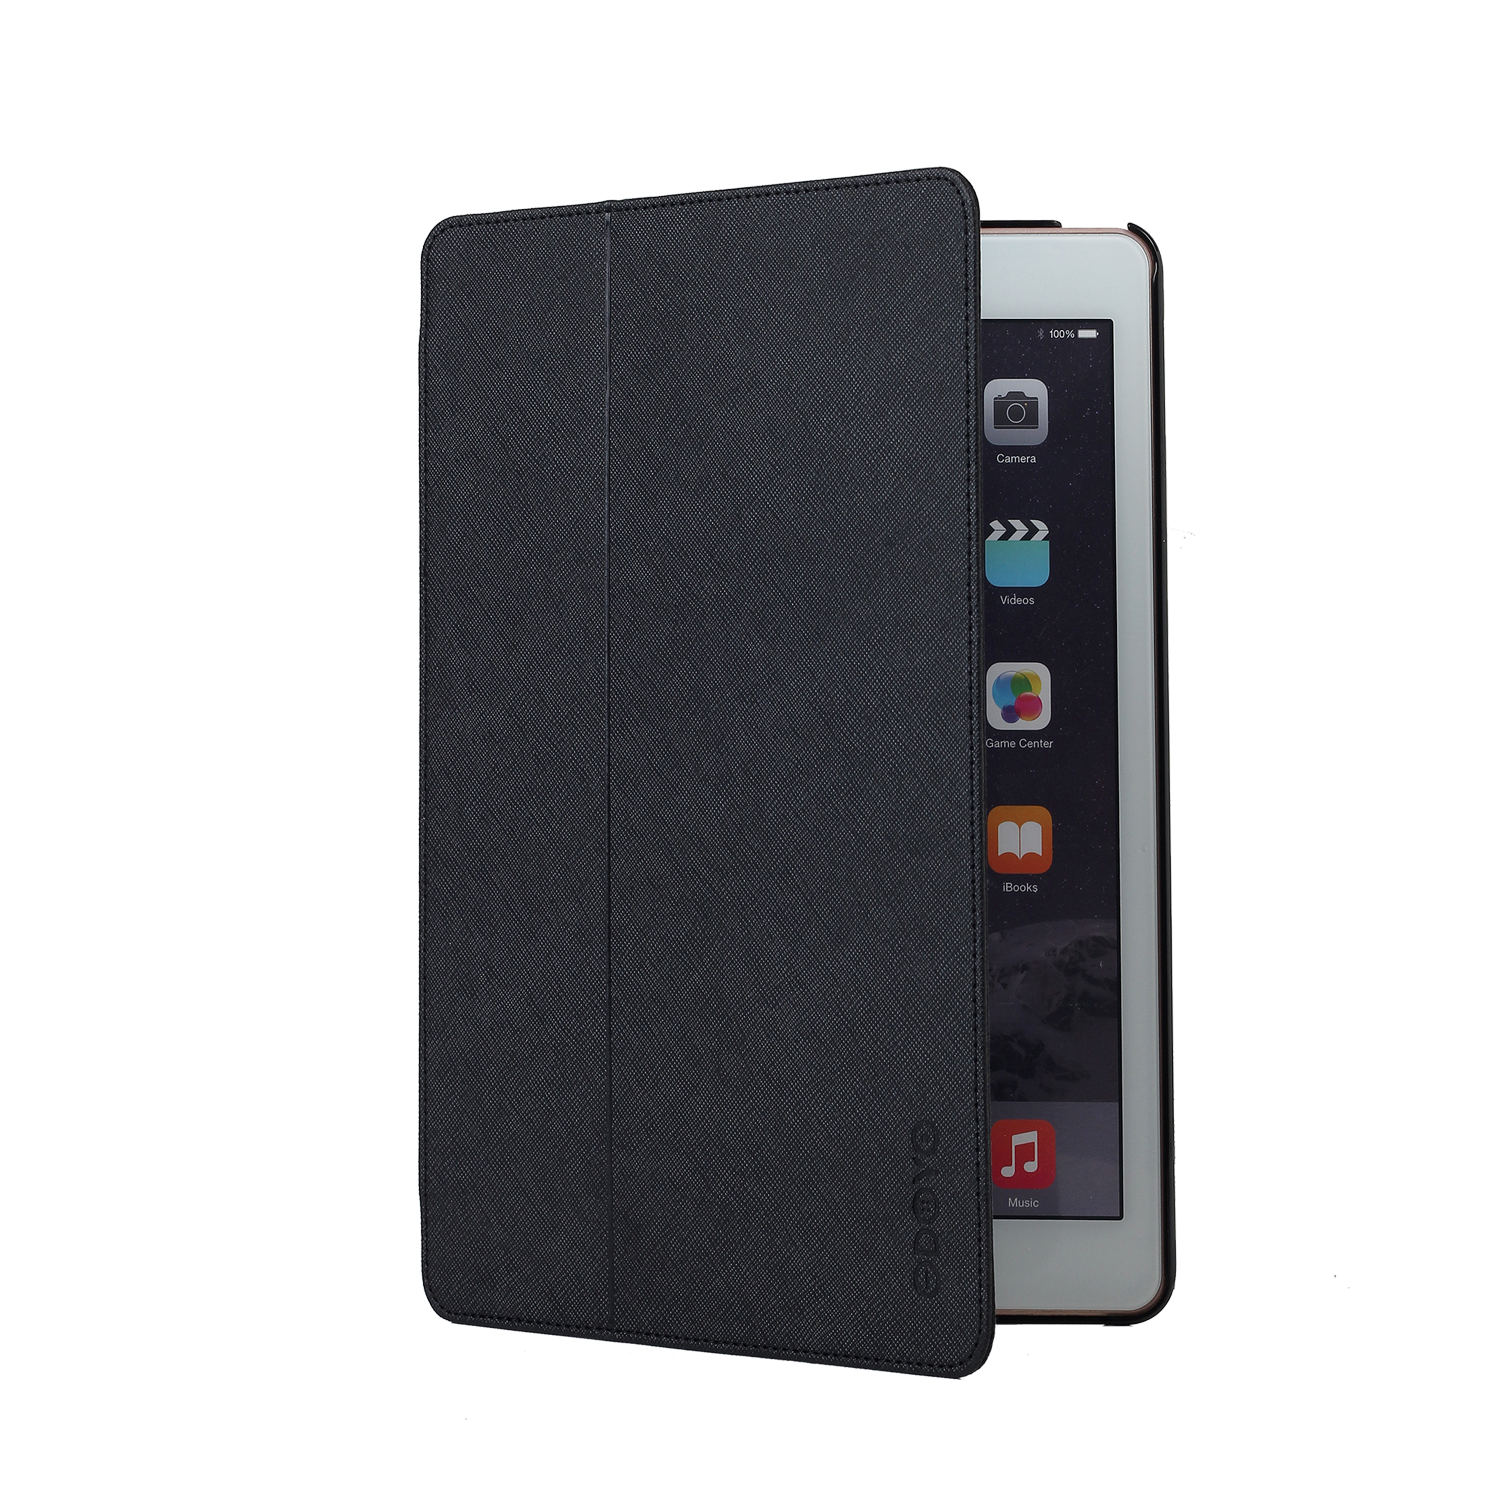 AirCoat Perfect Protective Case for iPad Air 2 - ODOYO